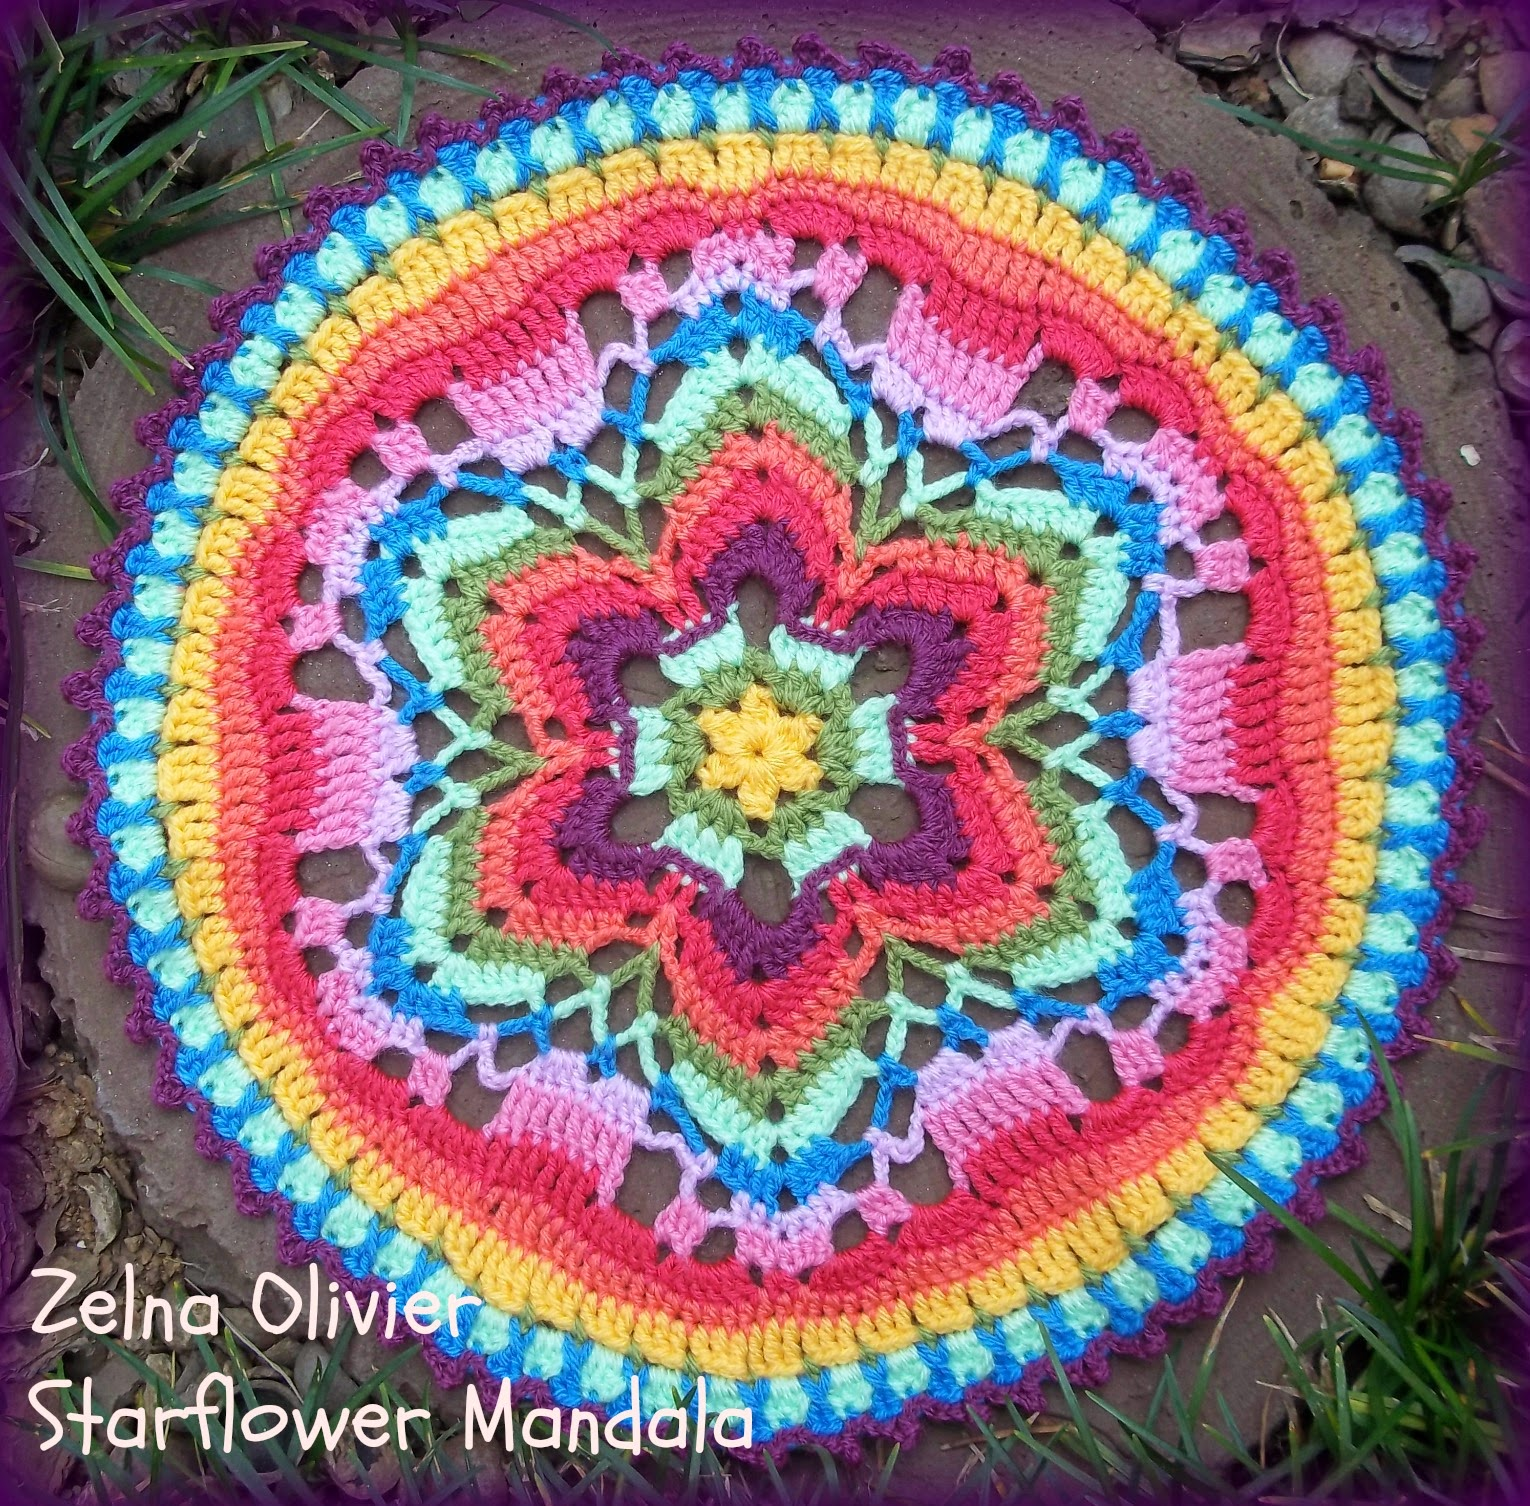 Crochet Free Pattern Mandala : Zooty Owls Crafty Blog: Starflower Mandala: Pattern